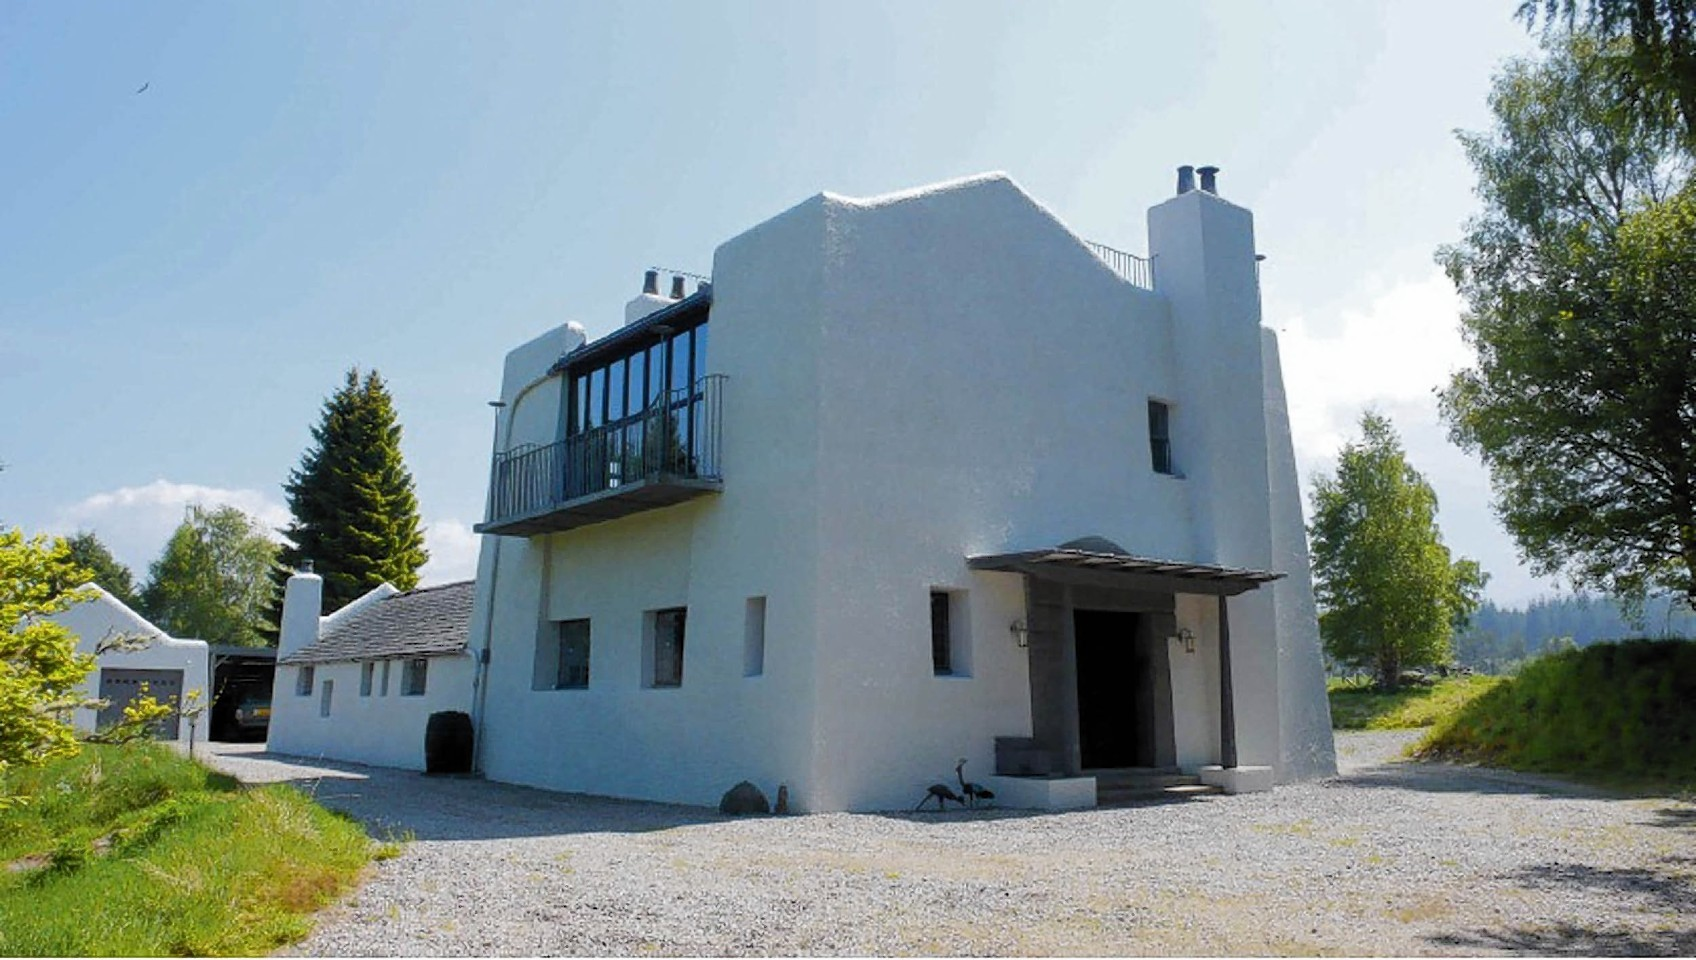 The home designed by Charles Rennie Mackintosh